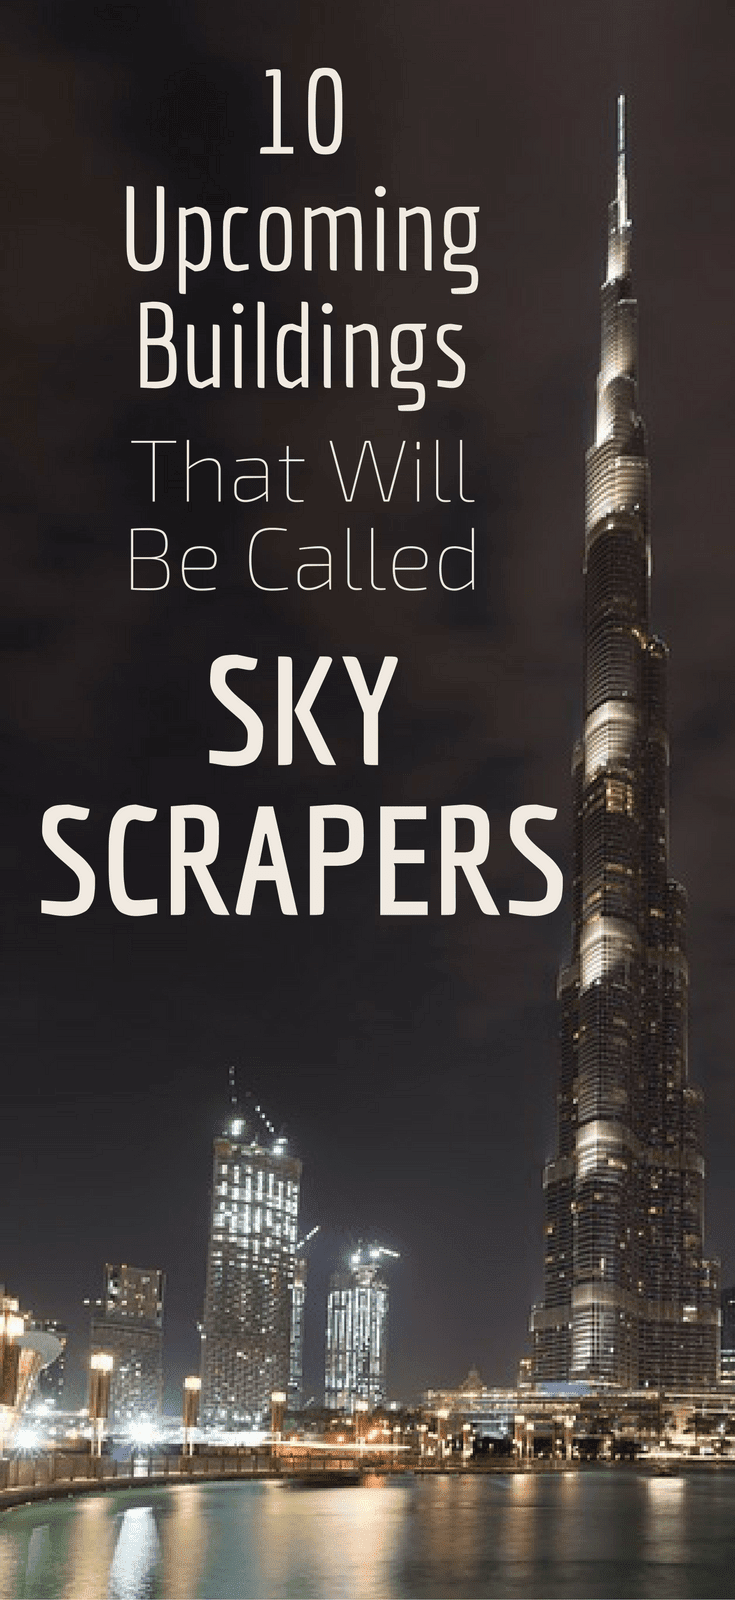 10 Upcoming Buildings That Will Be Called Sky Scrapers